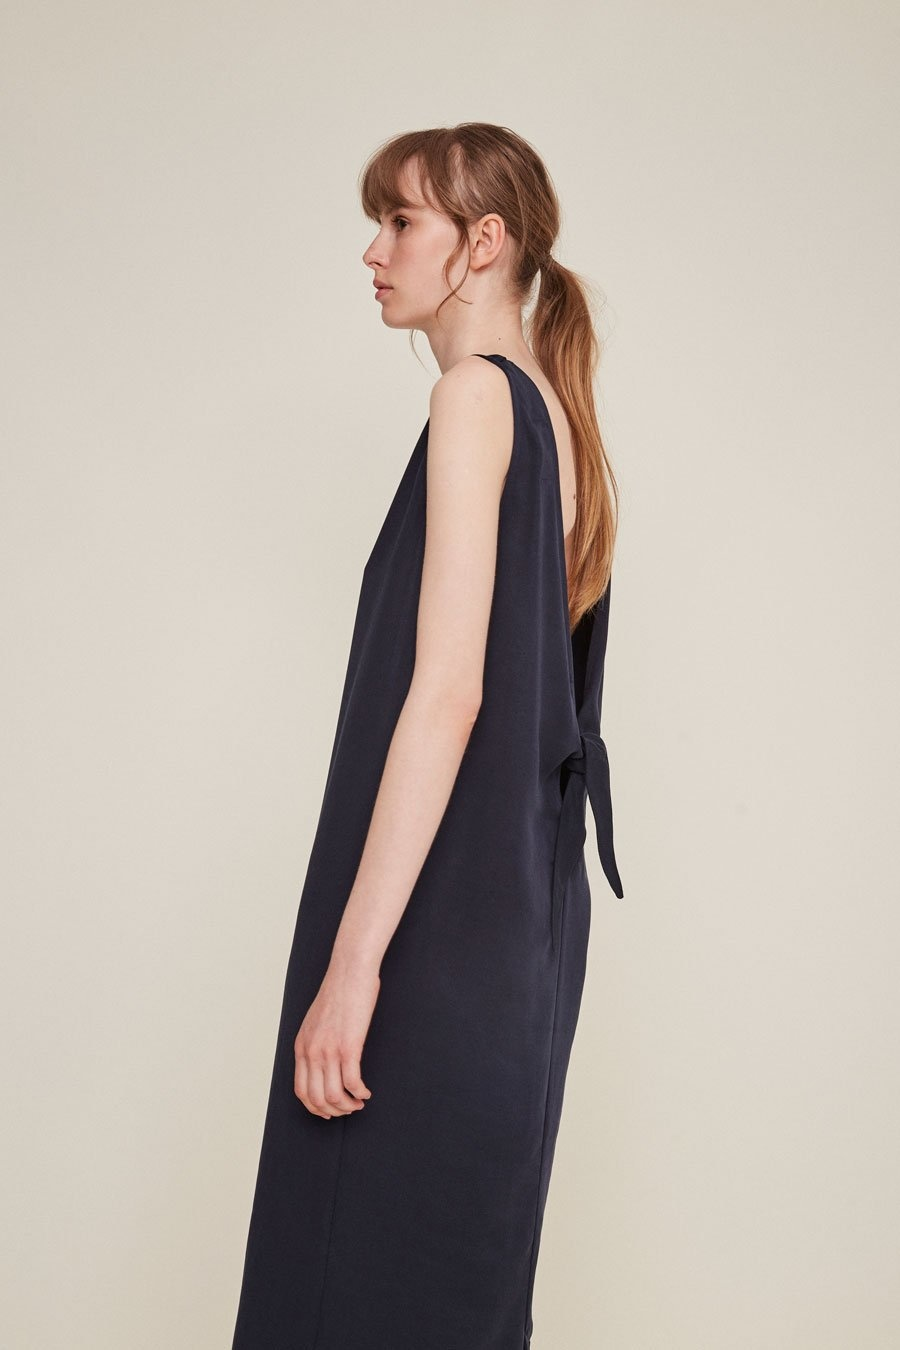 Rita Row Julia Dress in Navy